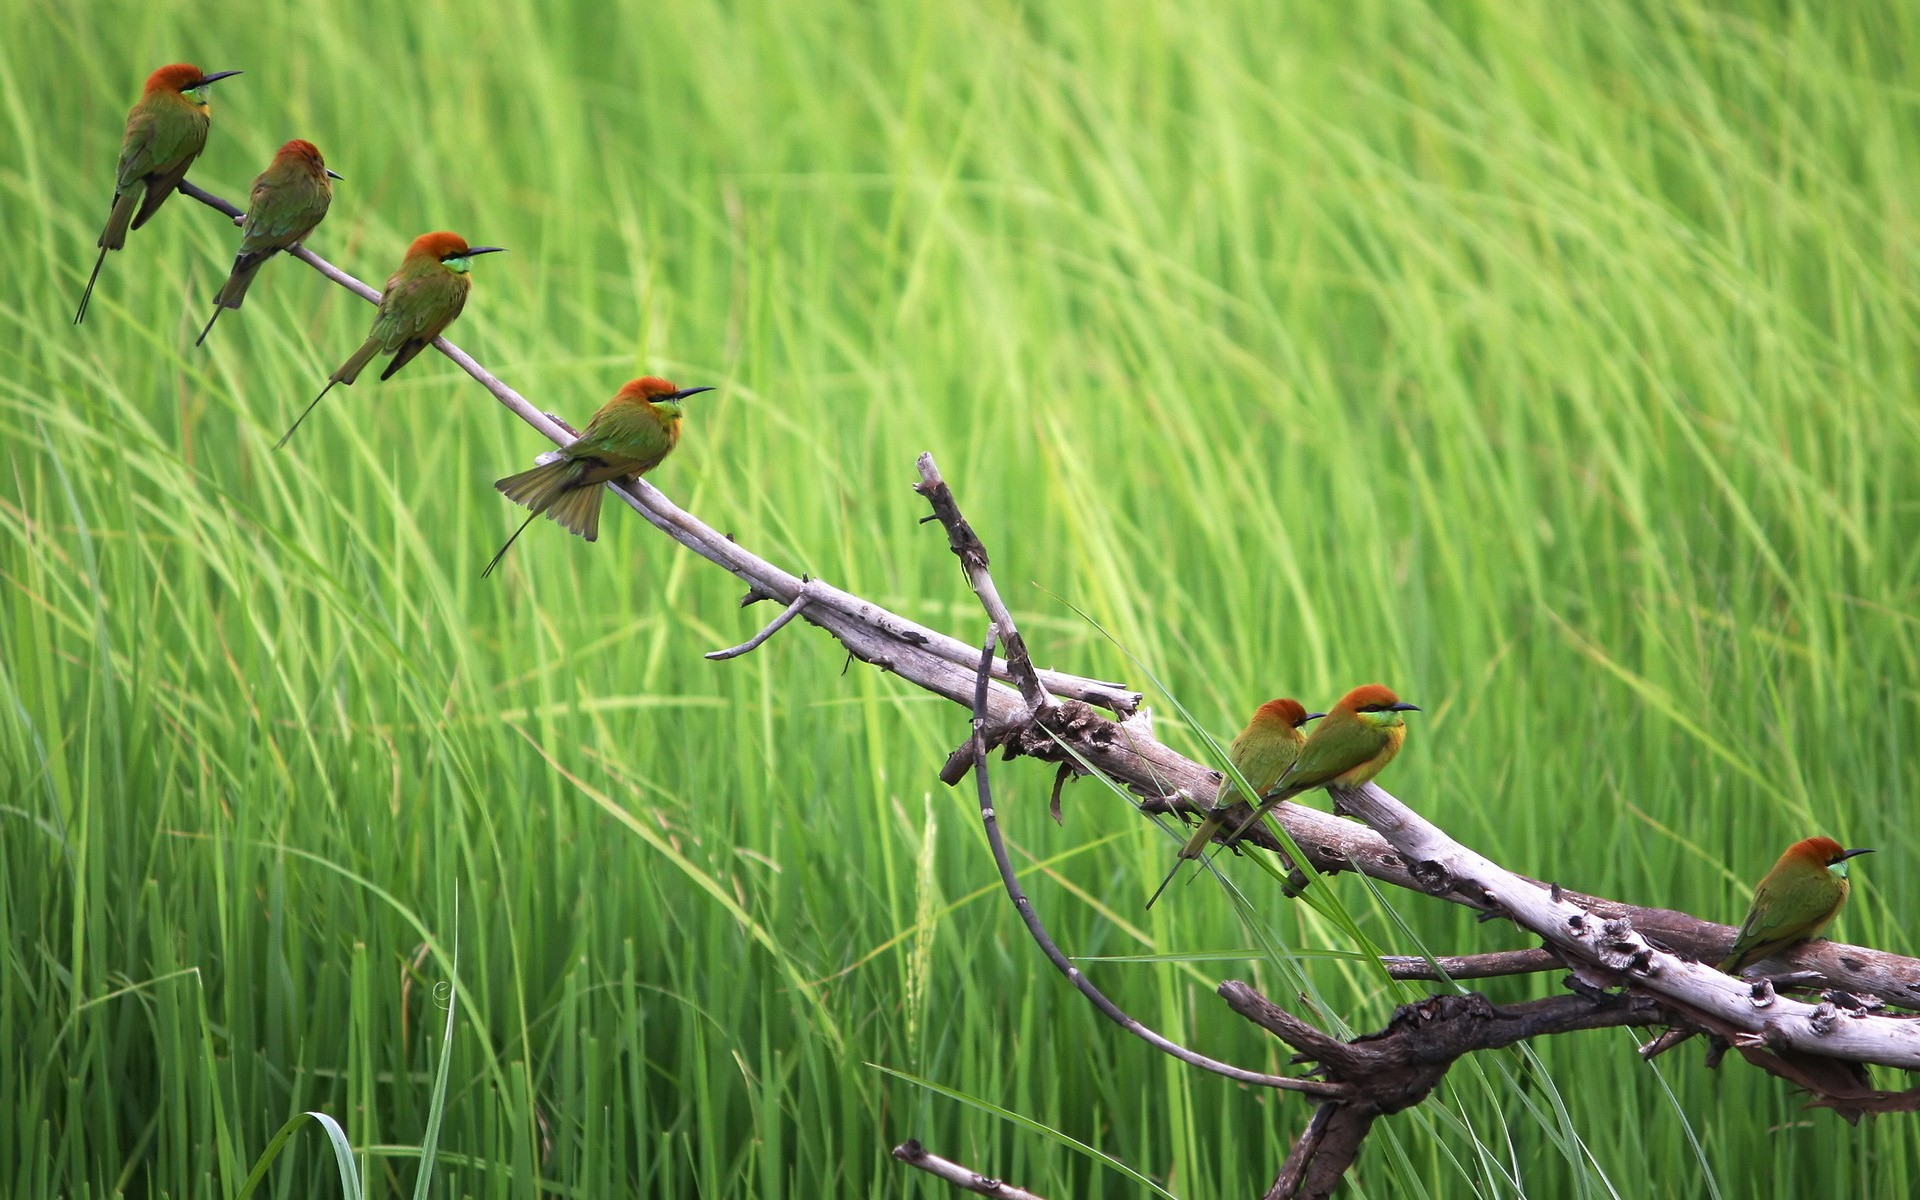 Colorful bird on an old snag in the grass, photo wallpaper